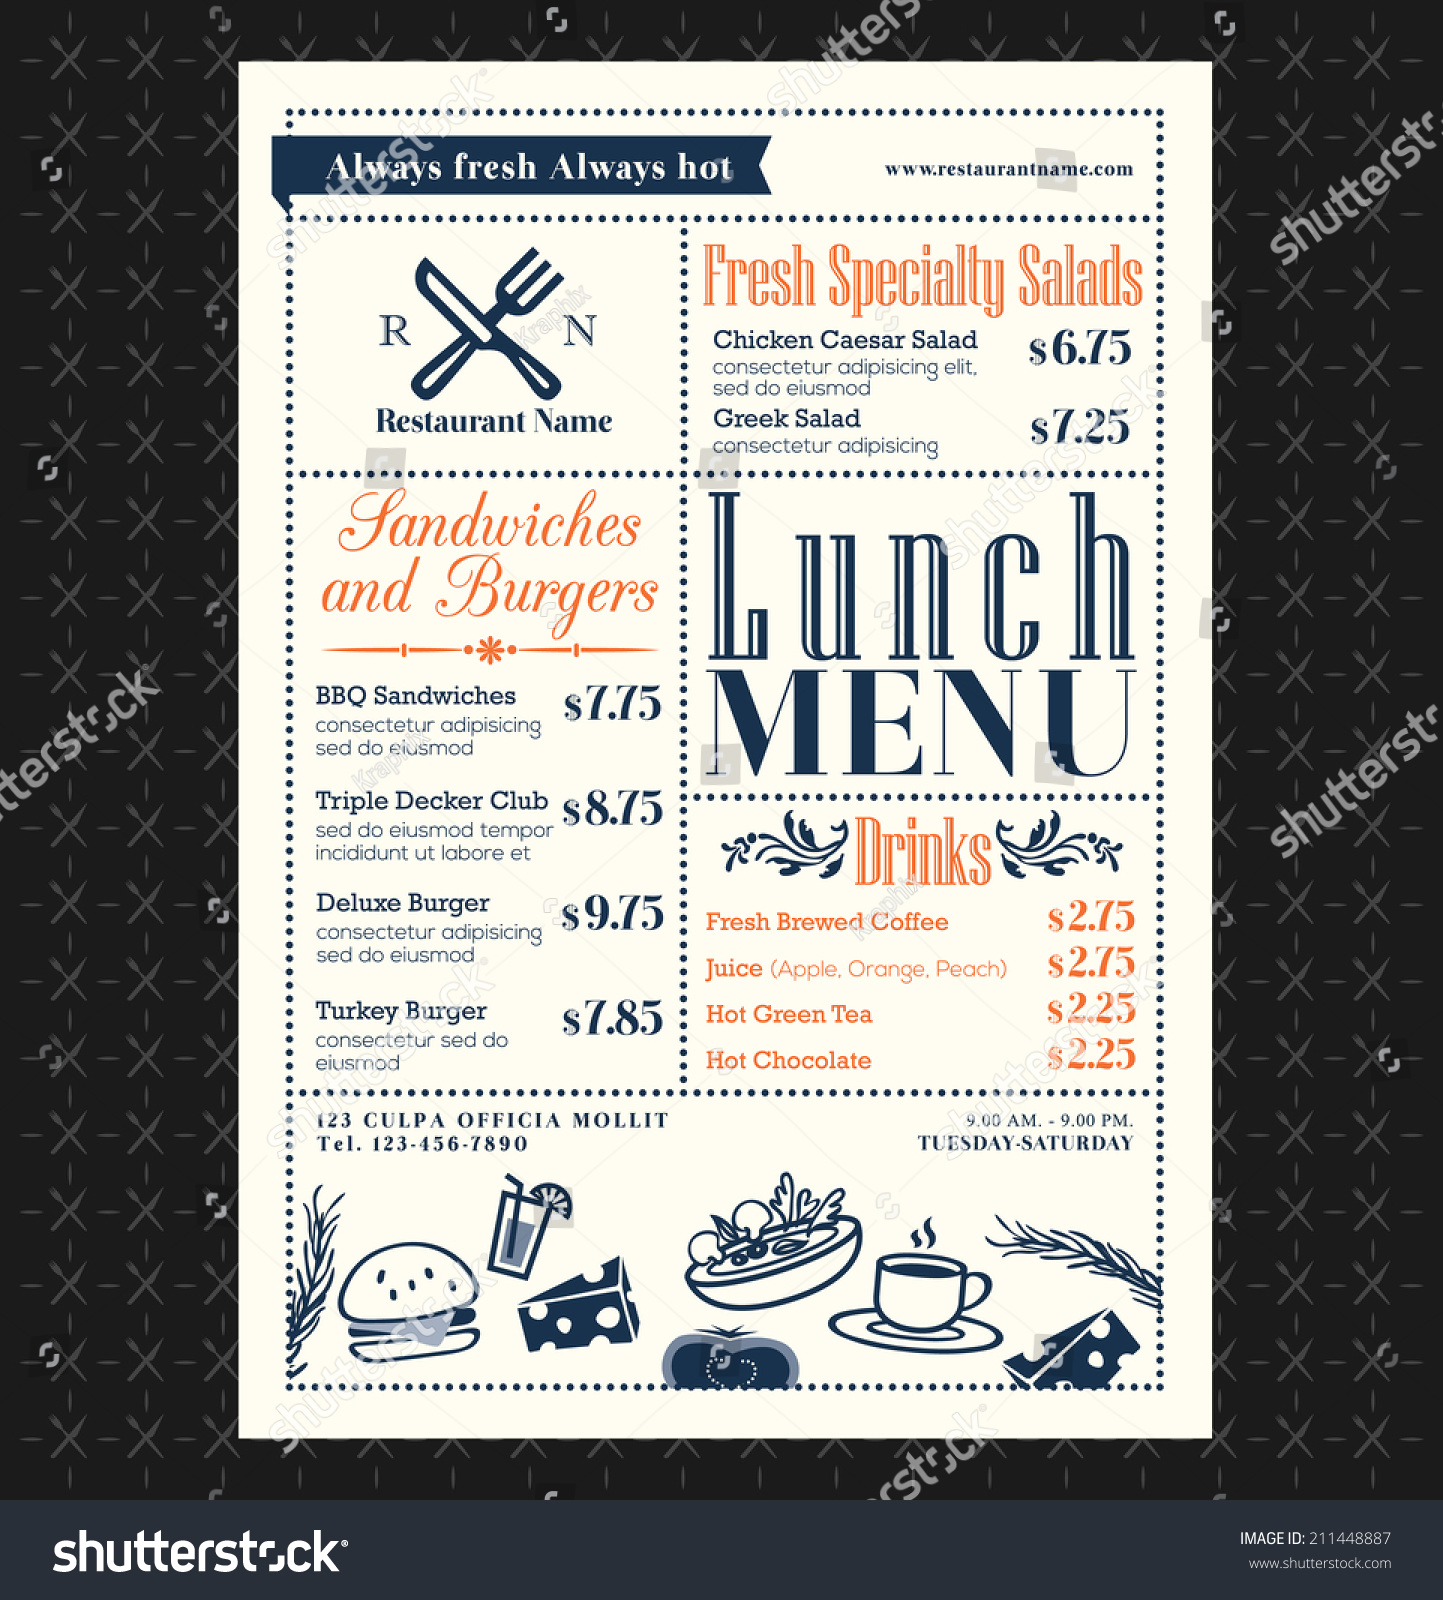 Retro Frame restaurant lunch menu design layout #211448887 - Larastock